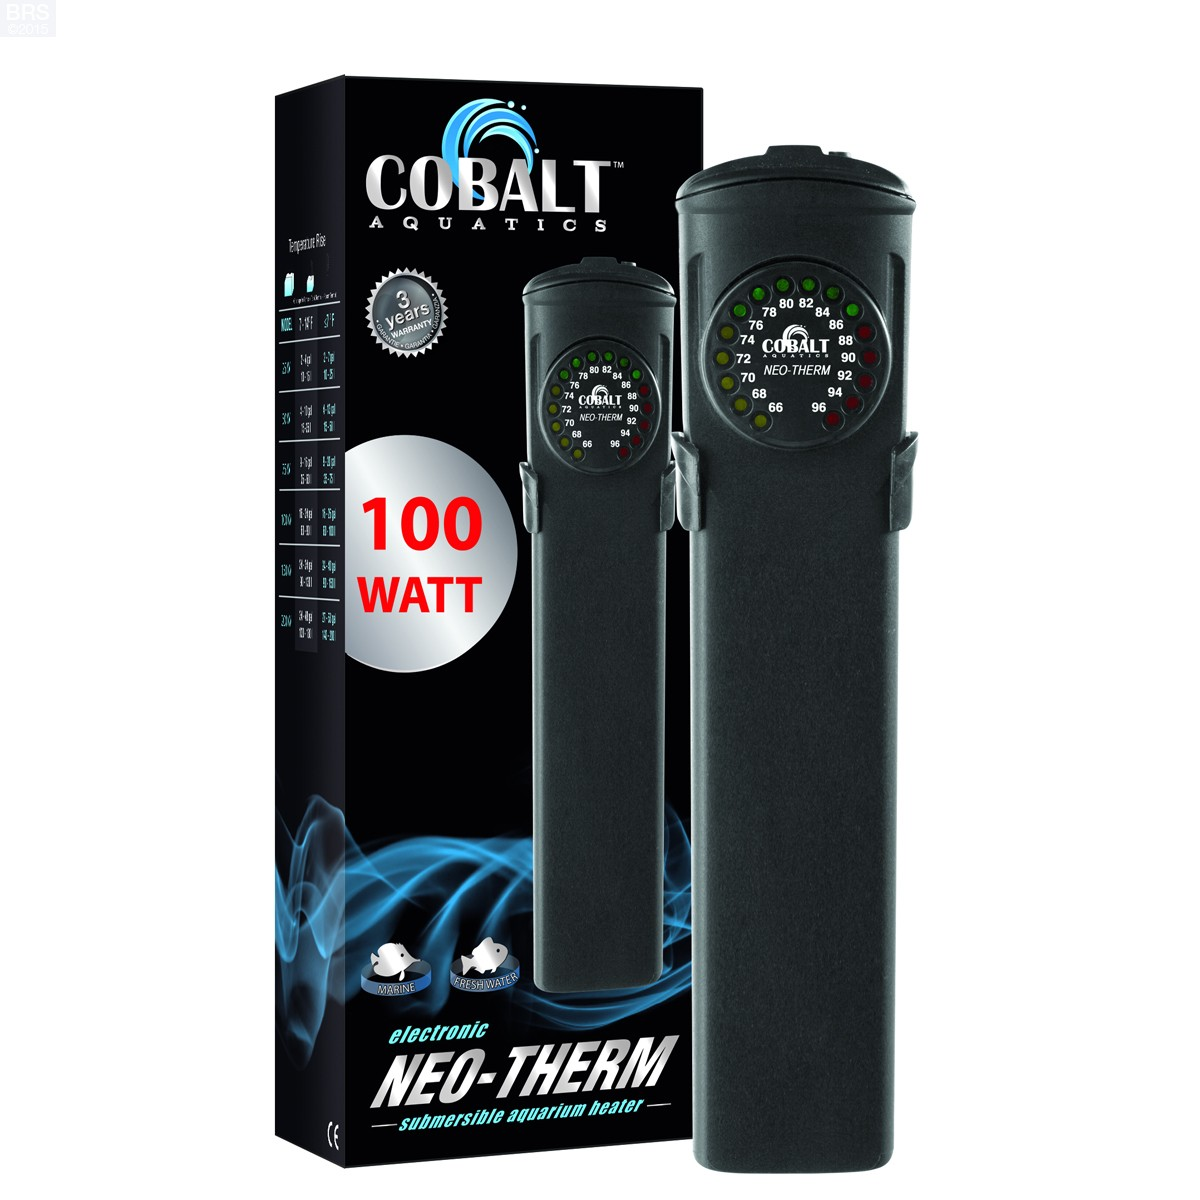 Cobalt Aquatics Neo Therm Submersible Heater Bulk Reef Supply #C20909